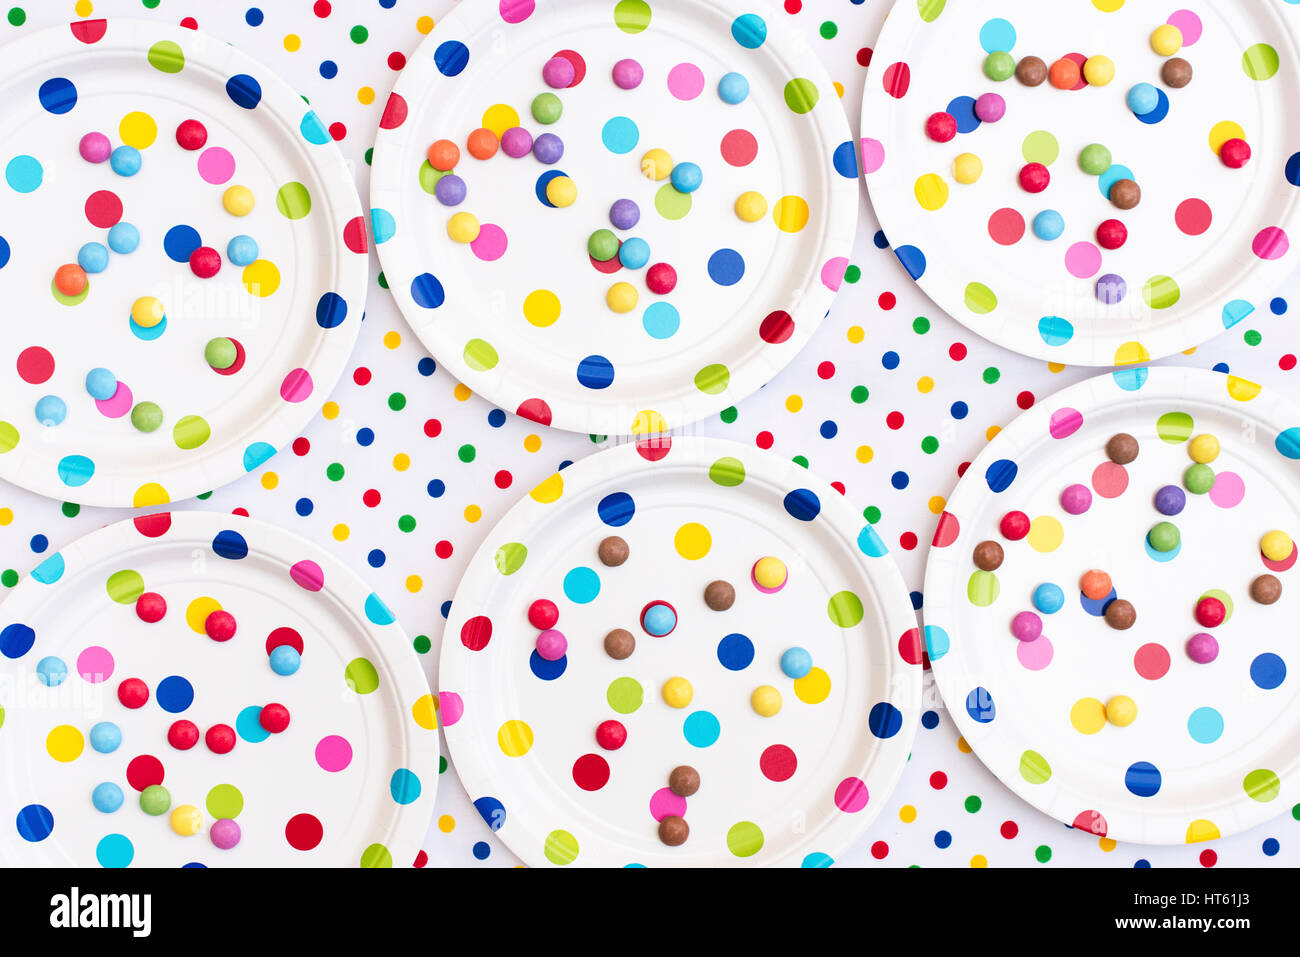 Smarties on colourful polka dot paper plates on a polka dot table cloth. Pattern  sc 1 st  Alamy & Smarties on colourful polka dot paper plates on a polka dot table ...